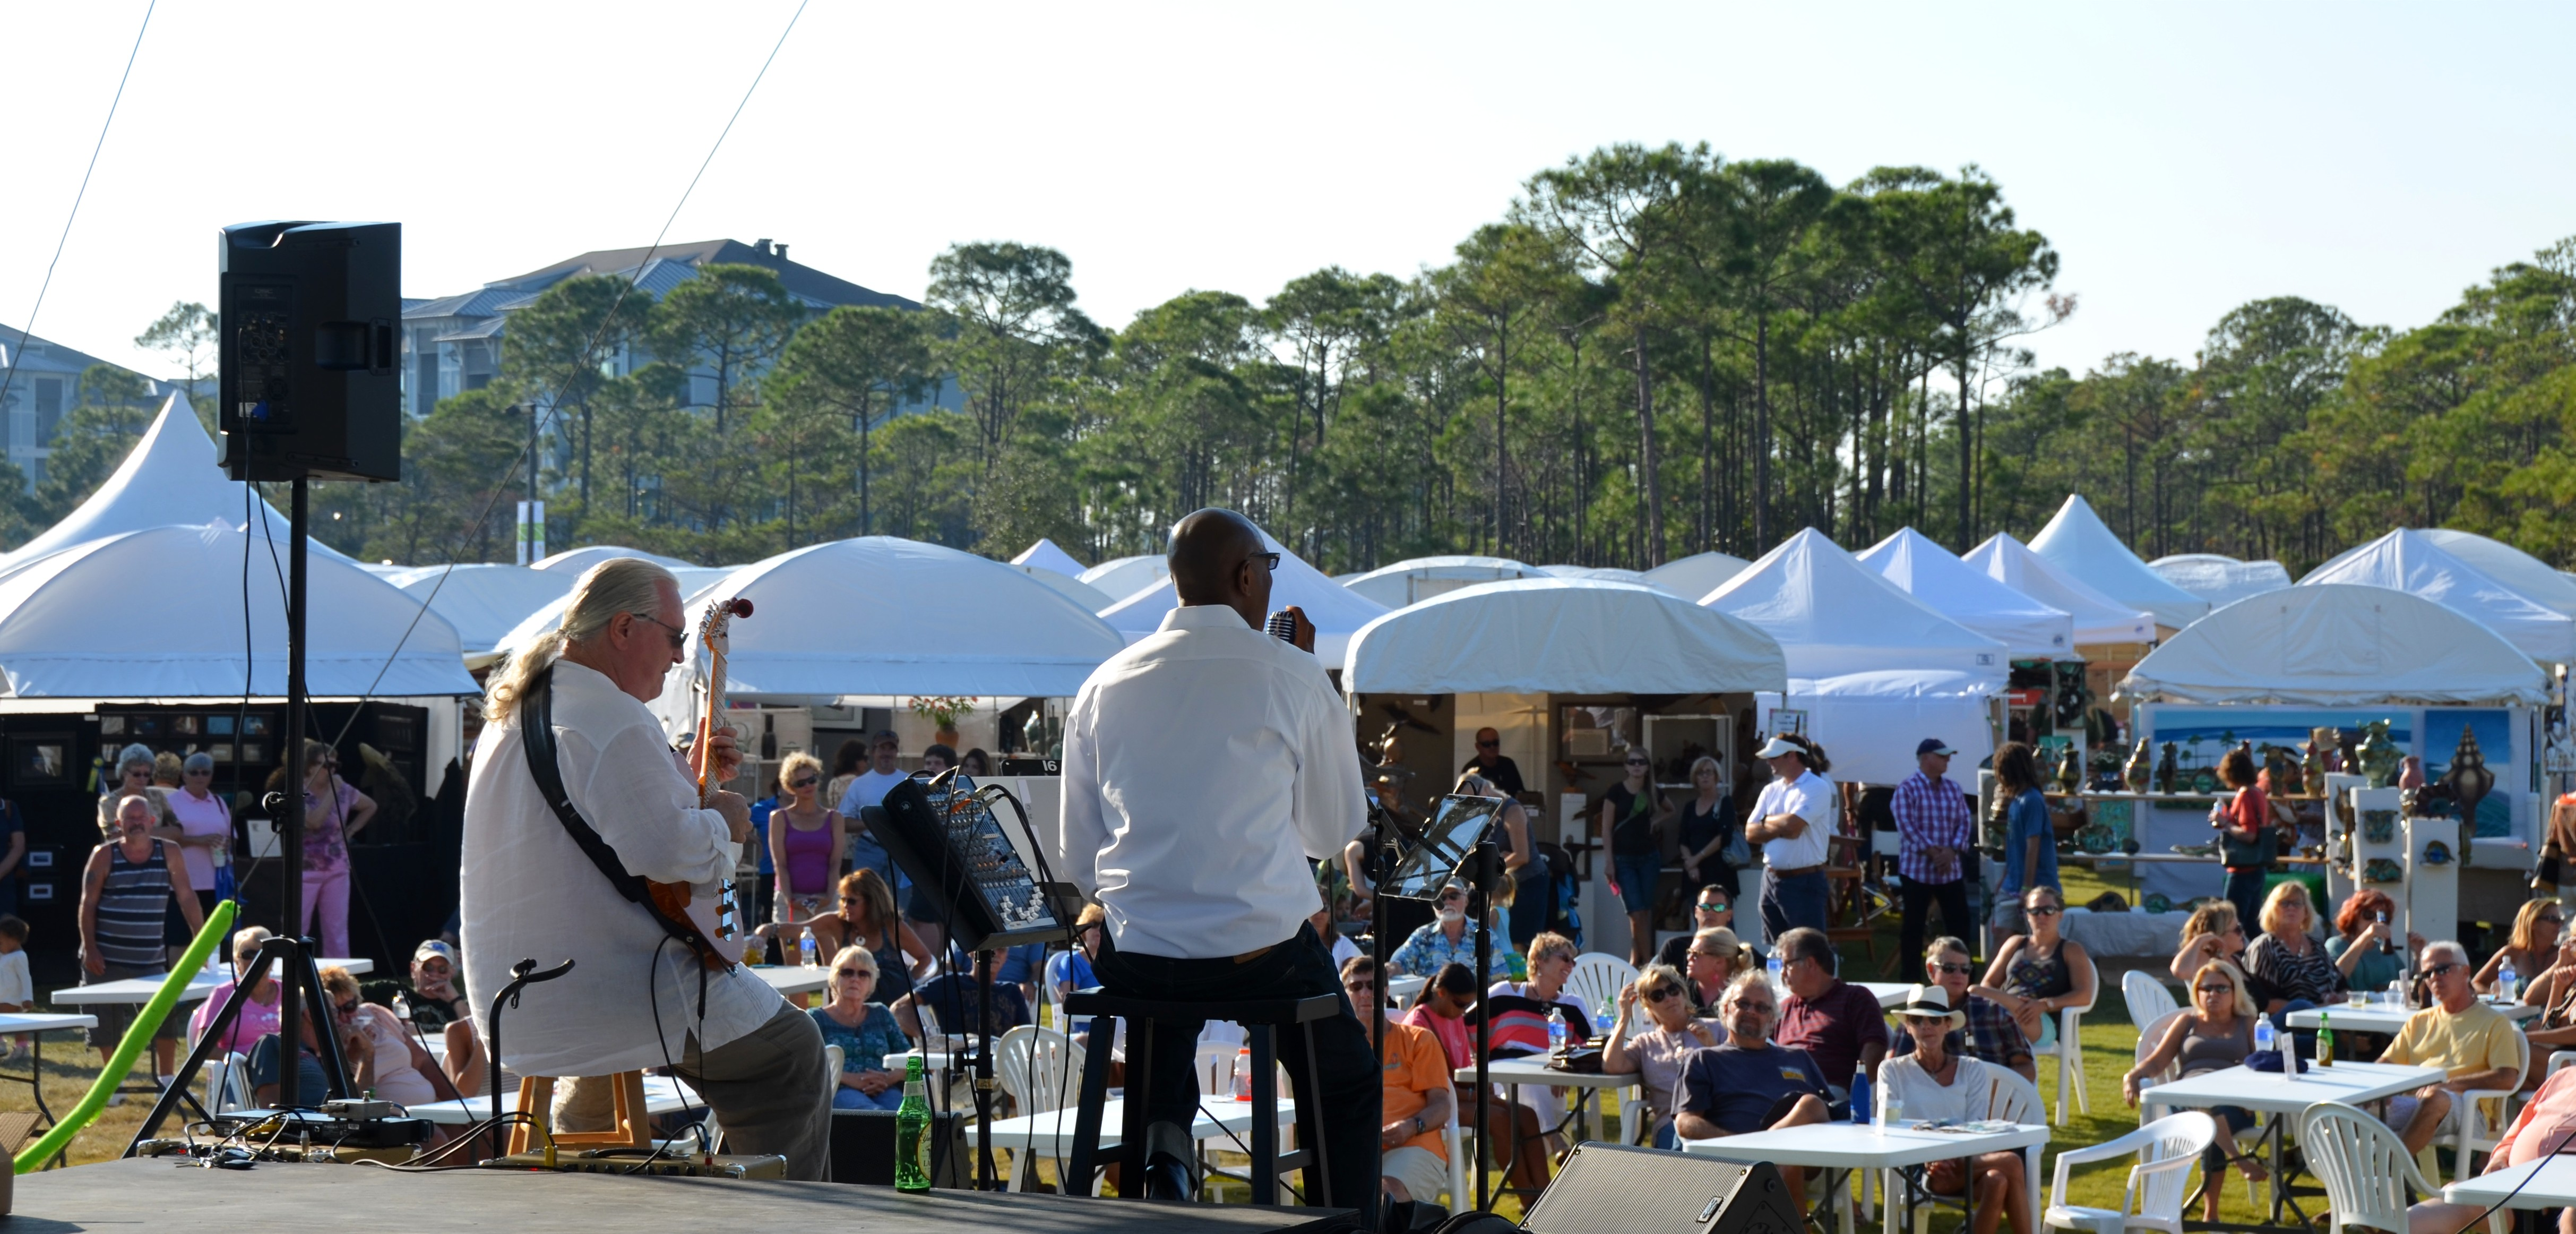 22nd ANNUAL FESTIVAL OF THE ARTS